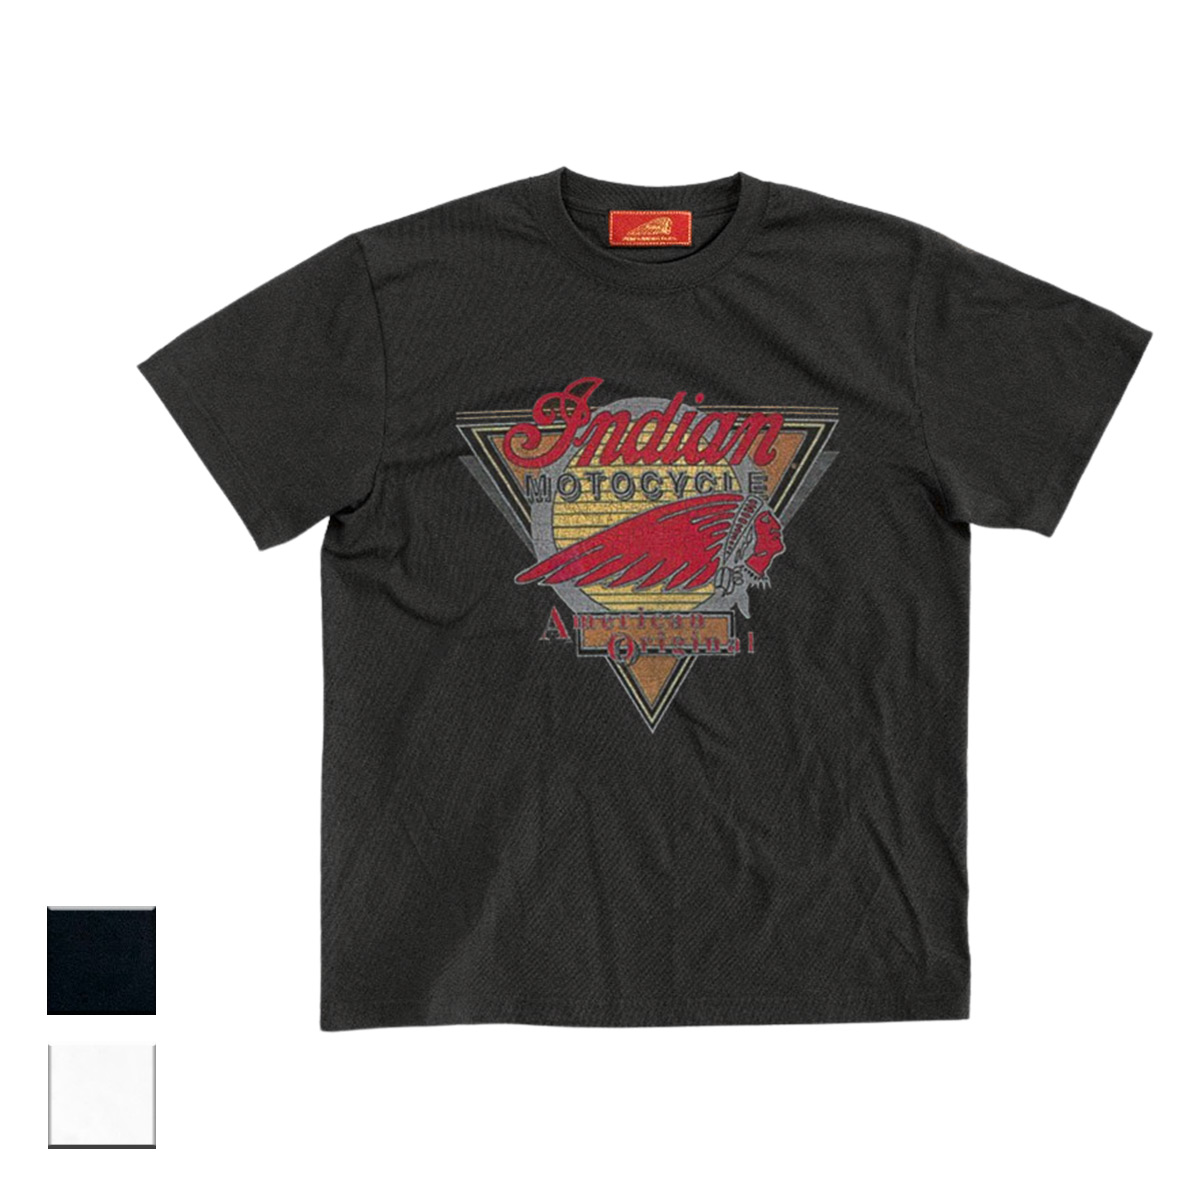 Indian インディアン The Indian is Back Tee